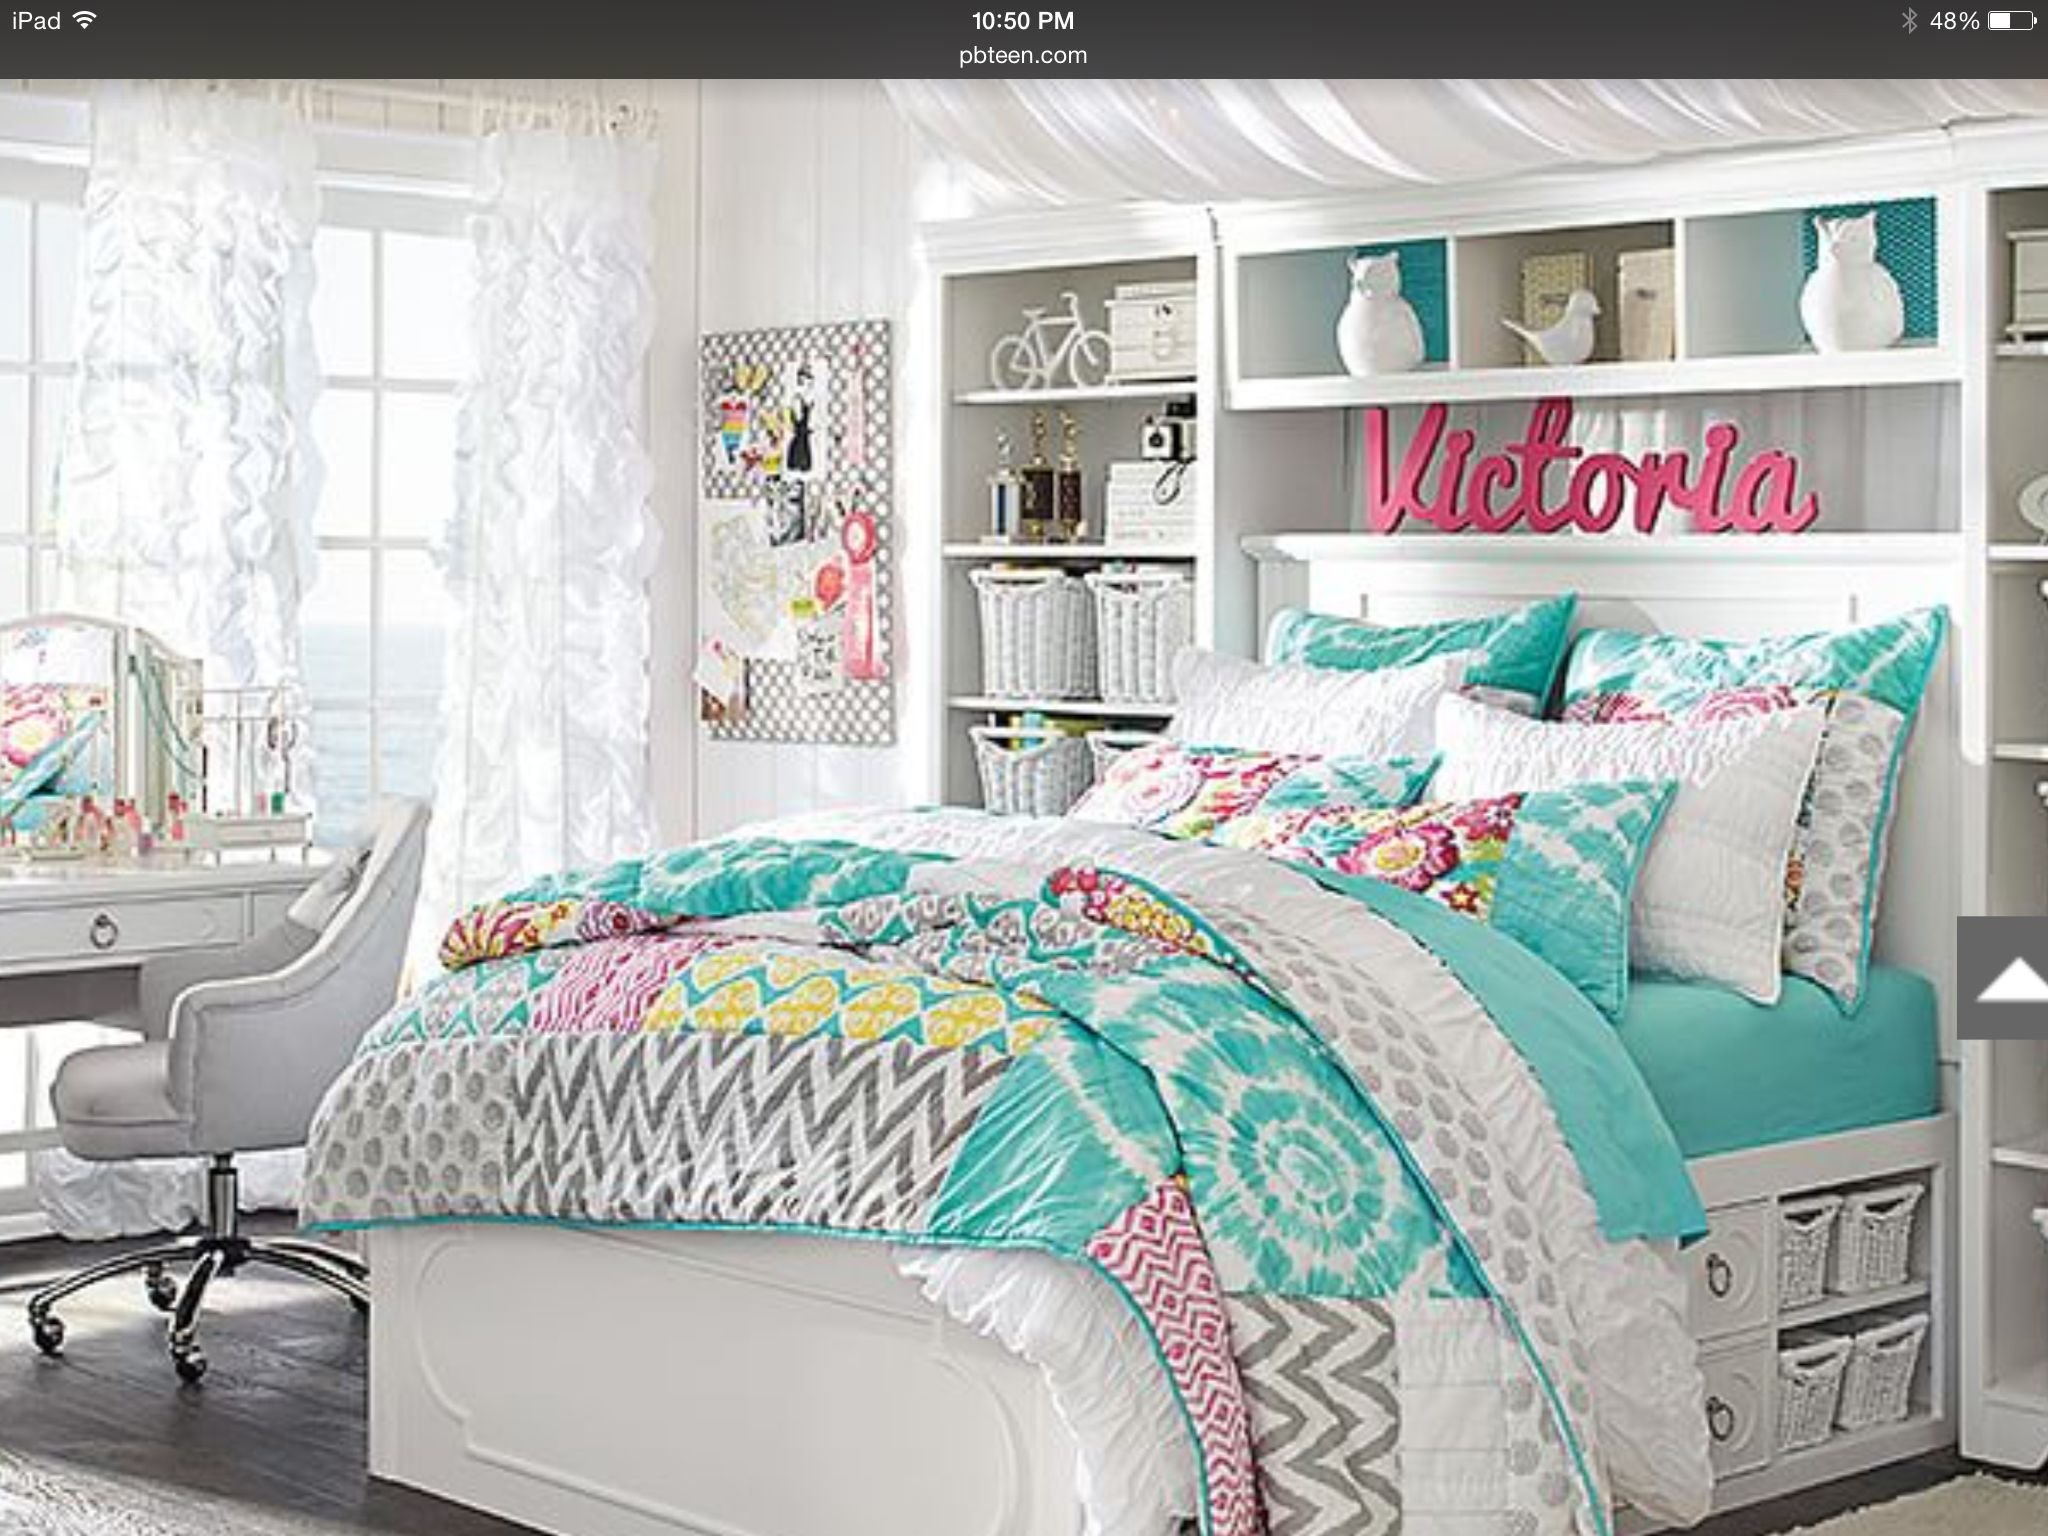 Best T**N Victoria Bedroom Decoration Decorasion De Cuartos With Pictures